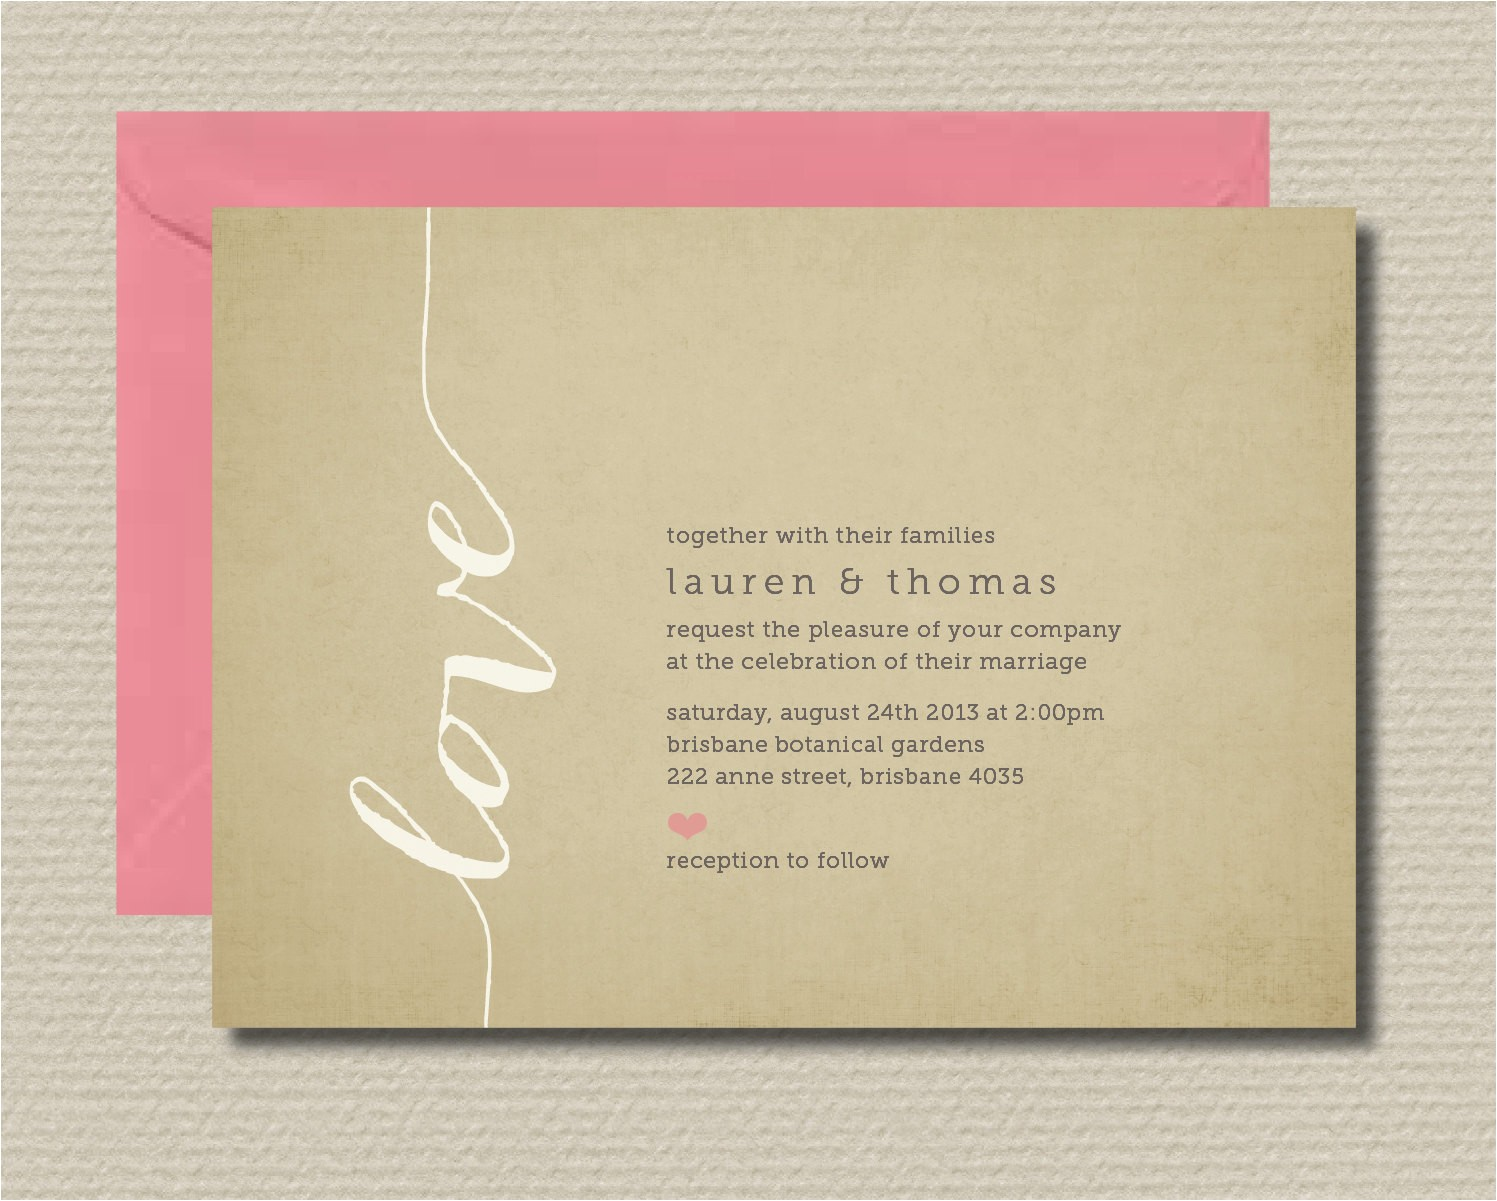 Wedding Invitation Rsvp Wording Samples Wedding Invitation Rsvp Wording Card Design Ideas